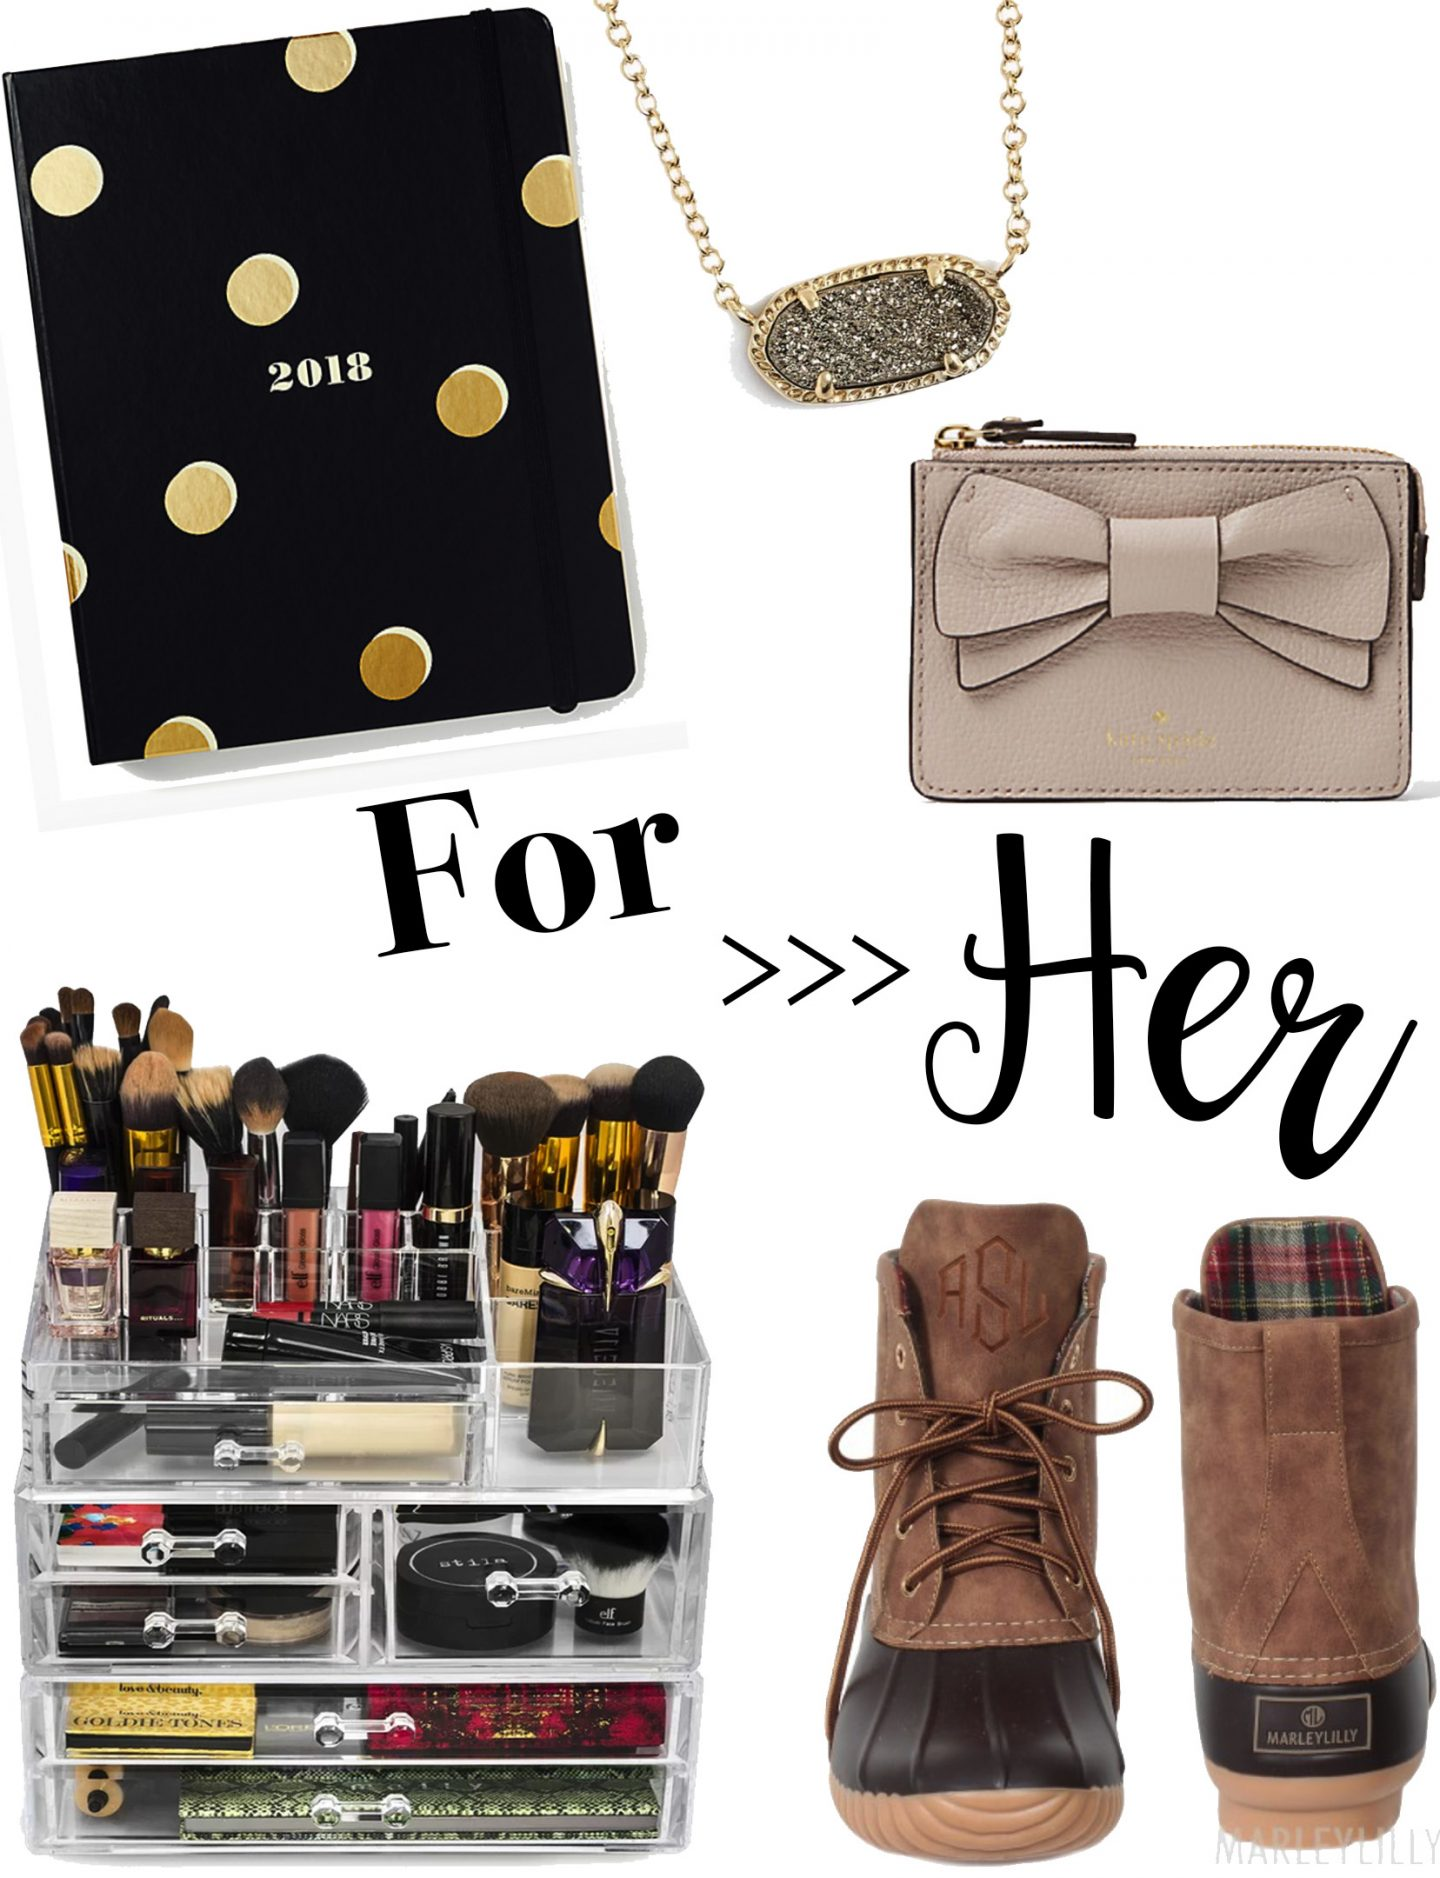 5 No-Fail Last Minute Gifts for Her, Him & Kids by Washington DC style blogger Styled Blonde